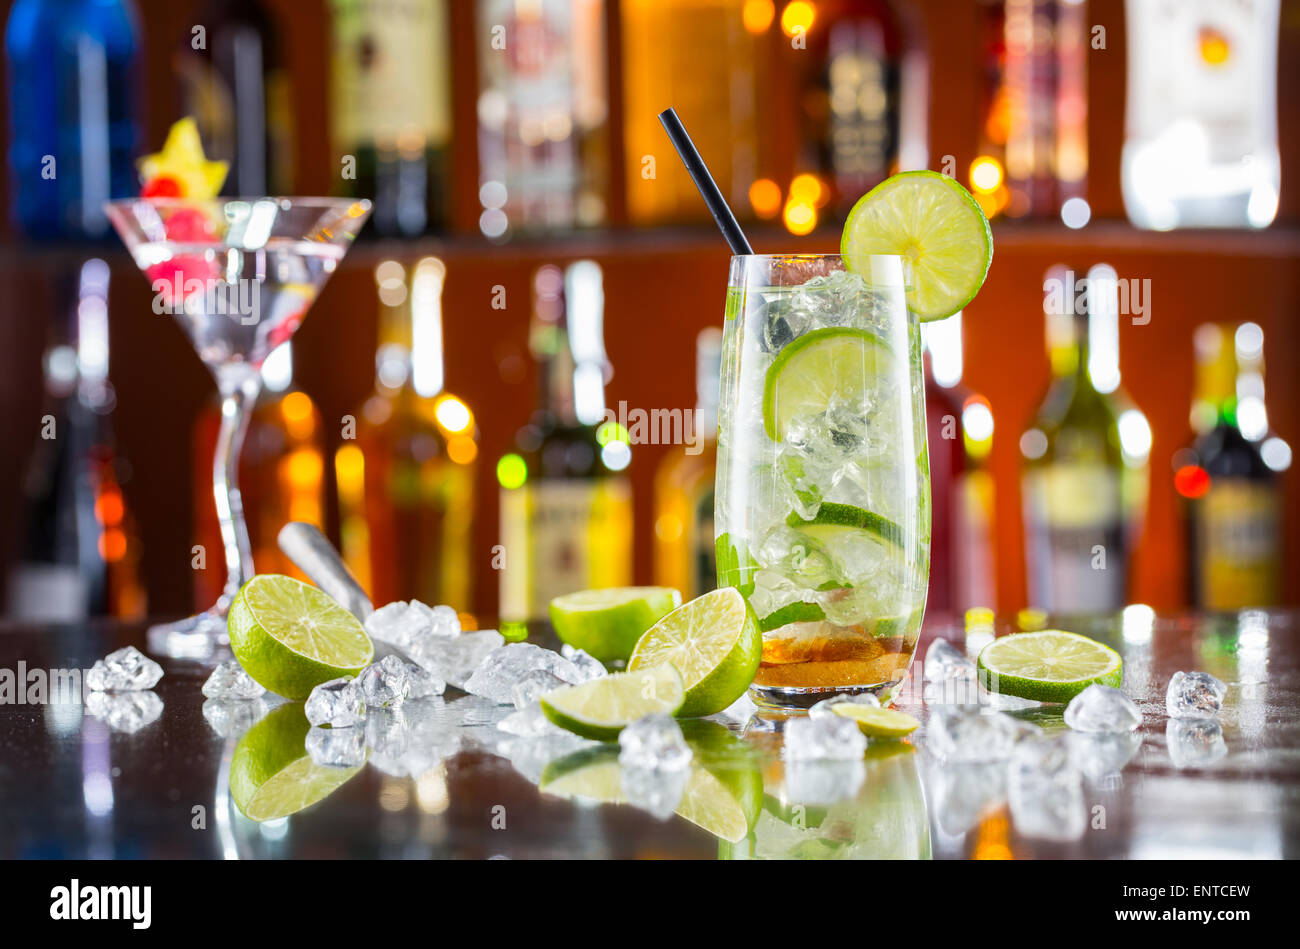 Mojito cocktail drink on bar counter with blur bottles on background - Stock Image